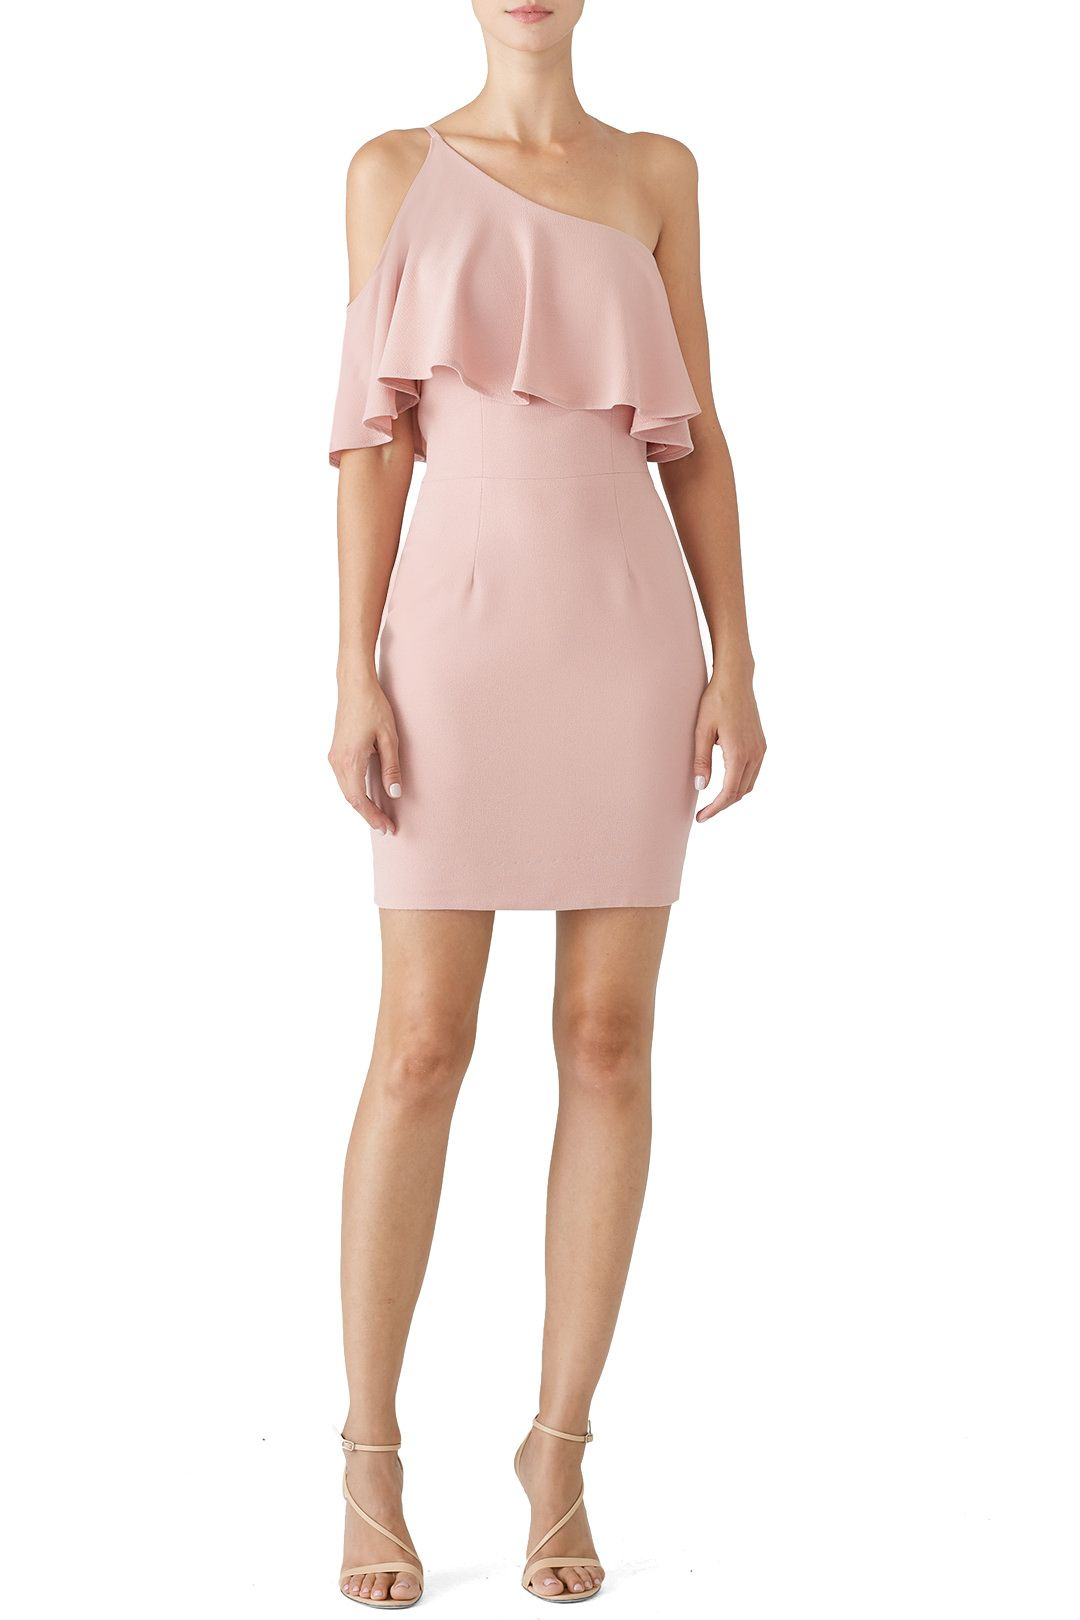 f79fd10cb96aa Rent Rose Petal Sabrina Dress by Dress The Population for $30 only at Rent  the Runway.